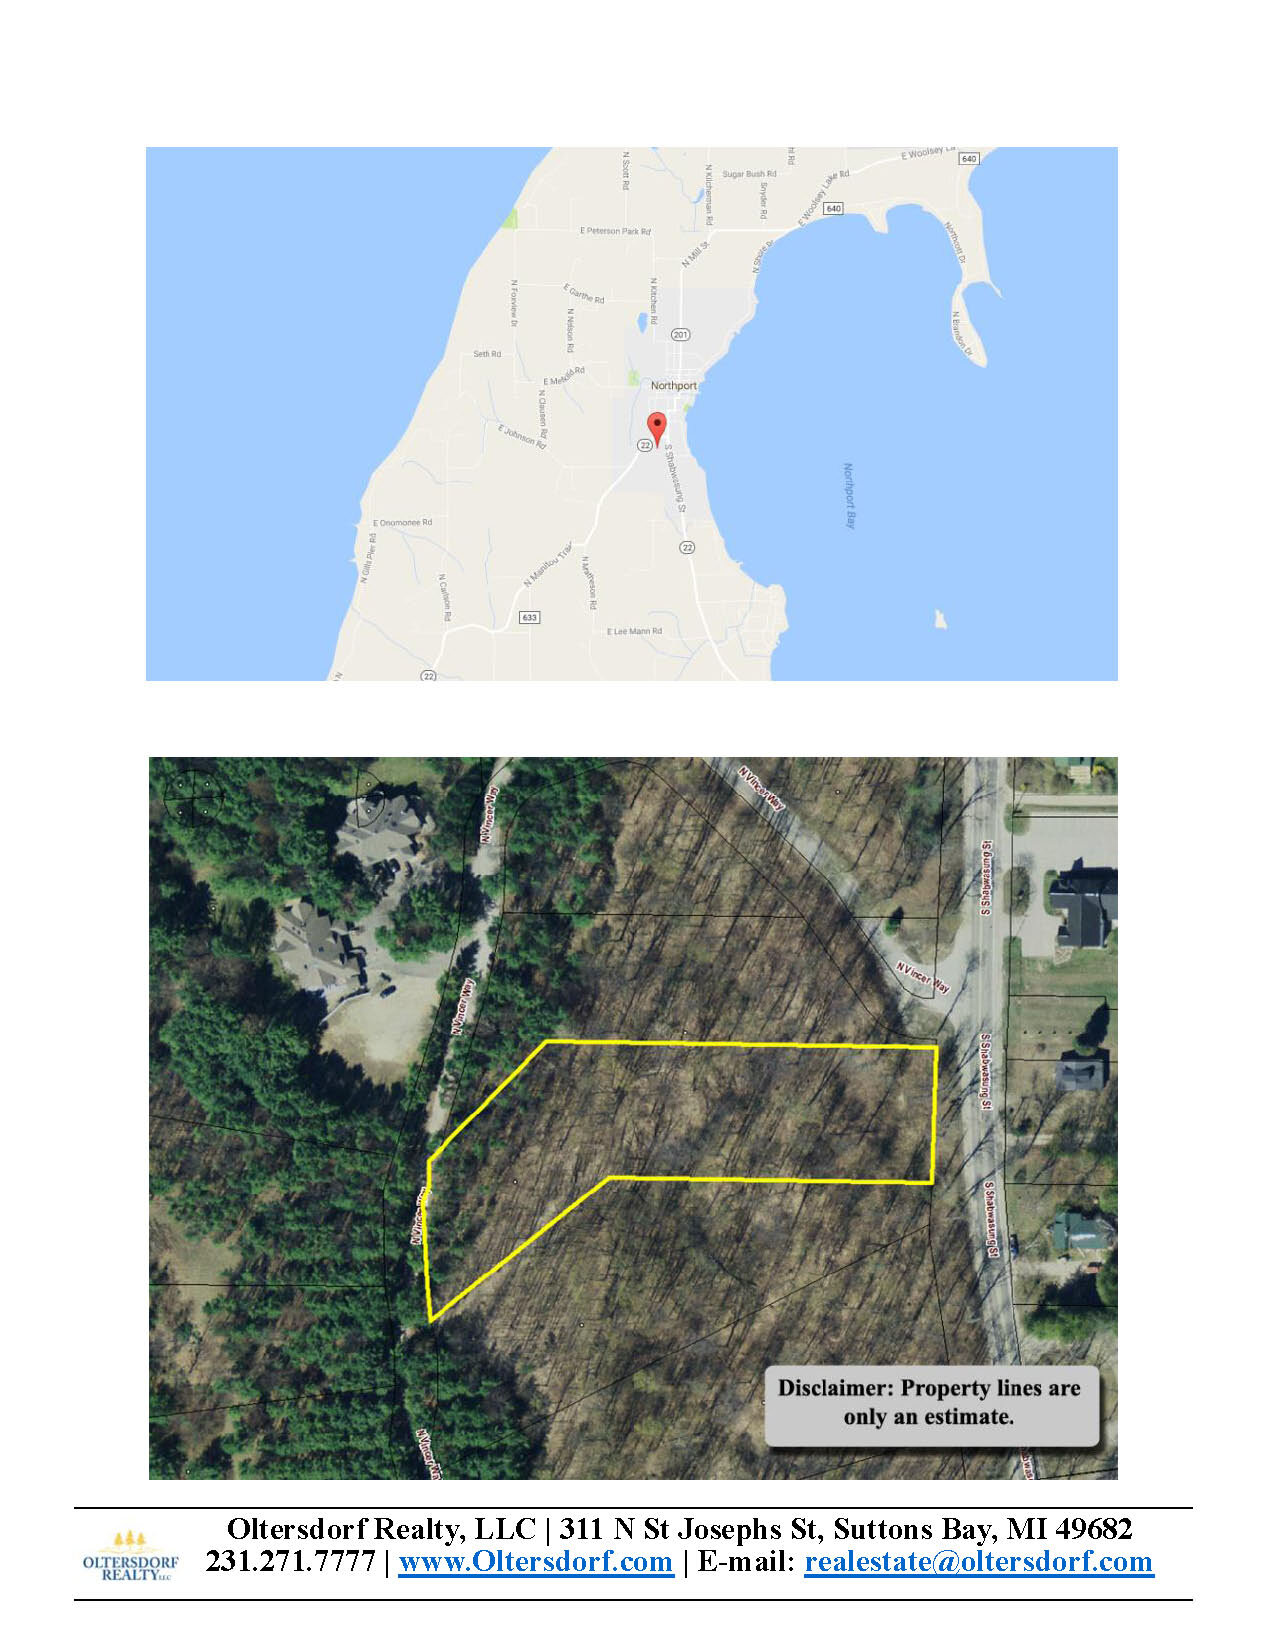 Parcel A - N Vincer Way, Northport - For Sale By Oltersdorf Realty LLC - Marketing Packet_Page_04.jpg